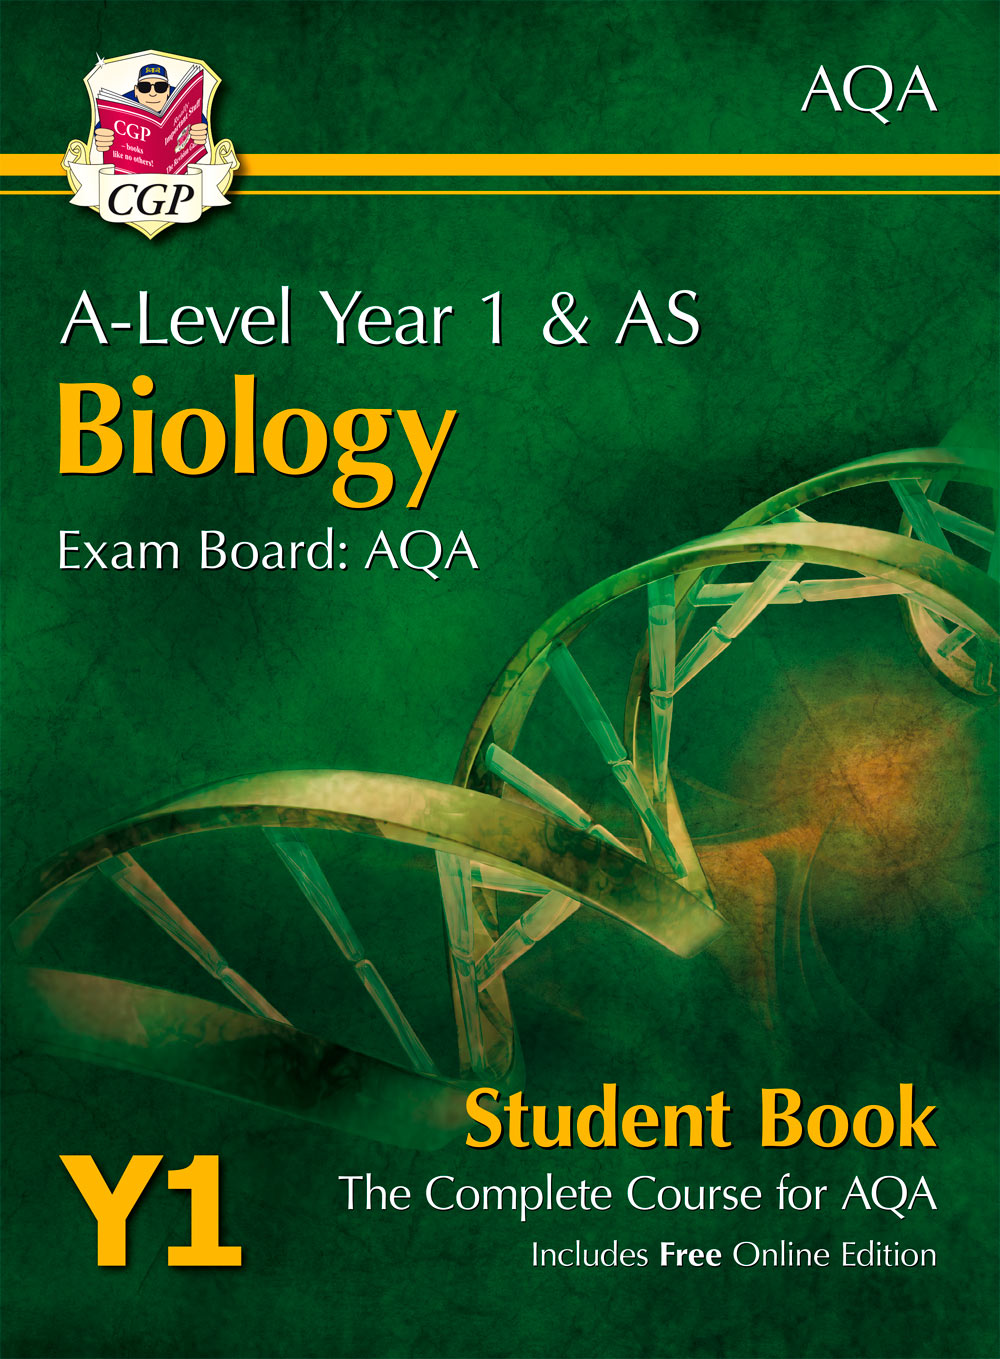 BATB53 - A-Level Biology for AQA: Year 1 & AS Student Book